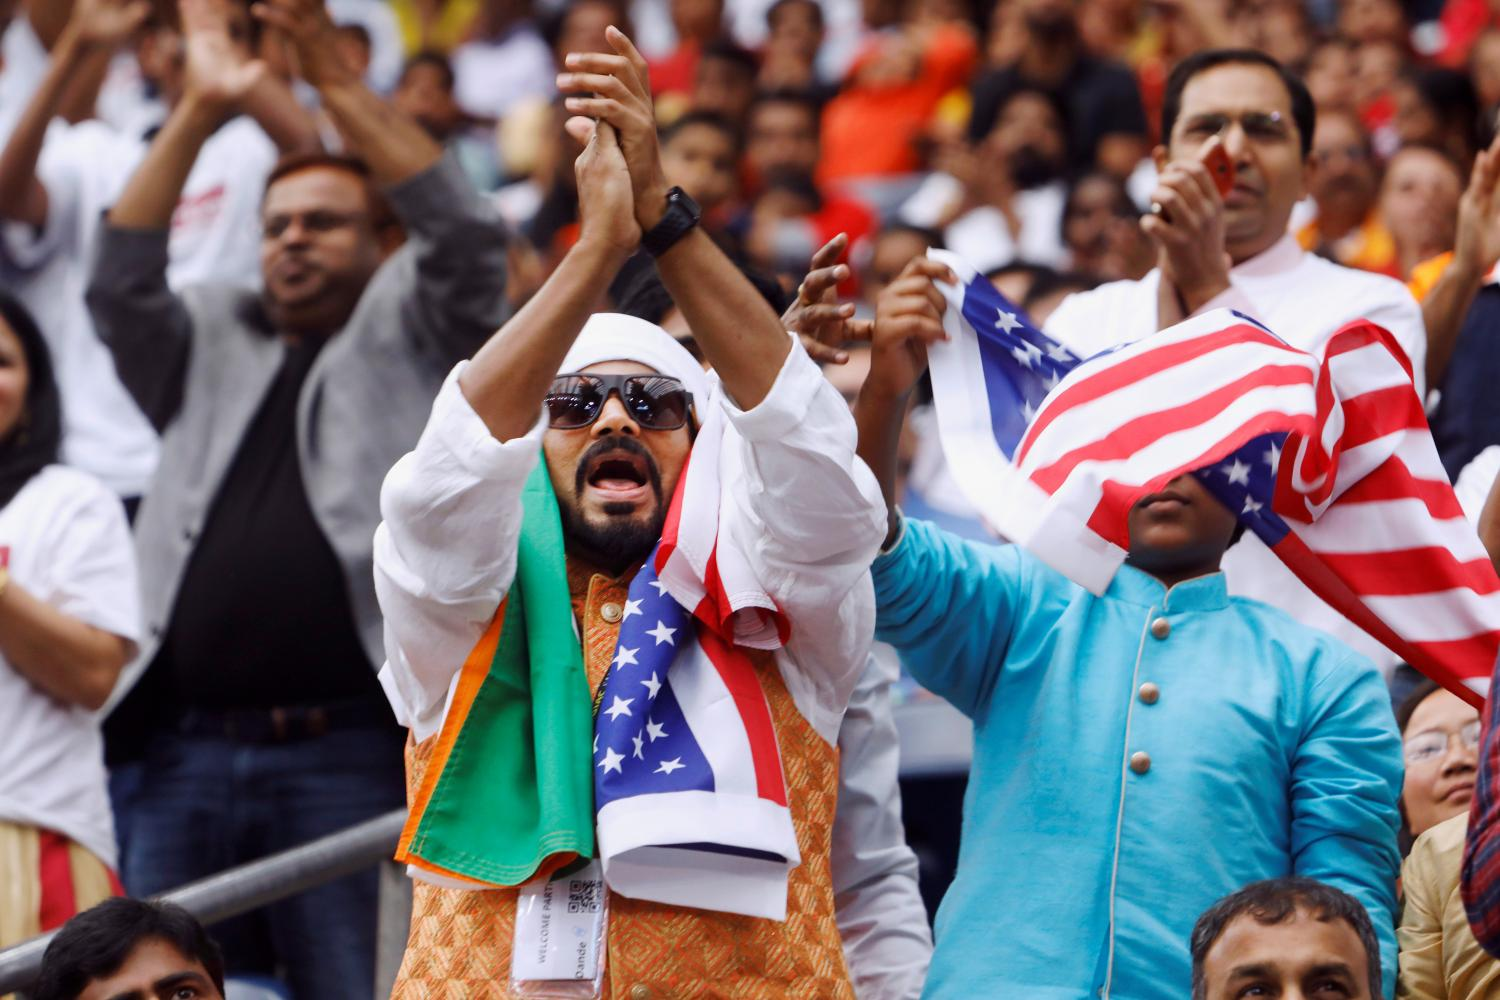 Supporters react during a 'Howdy, Modi' rally celebrating Indian Prime Minister Narendra Modi at NRG Stadium in Houston, Texas last September. REUTERS